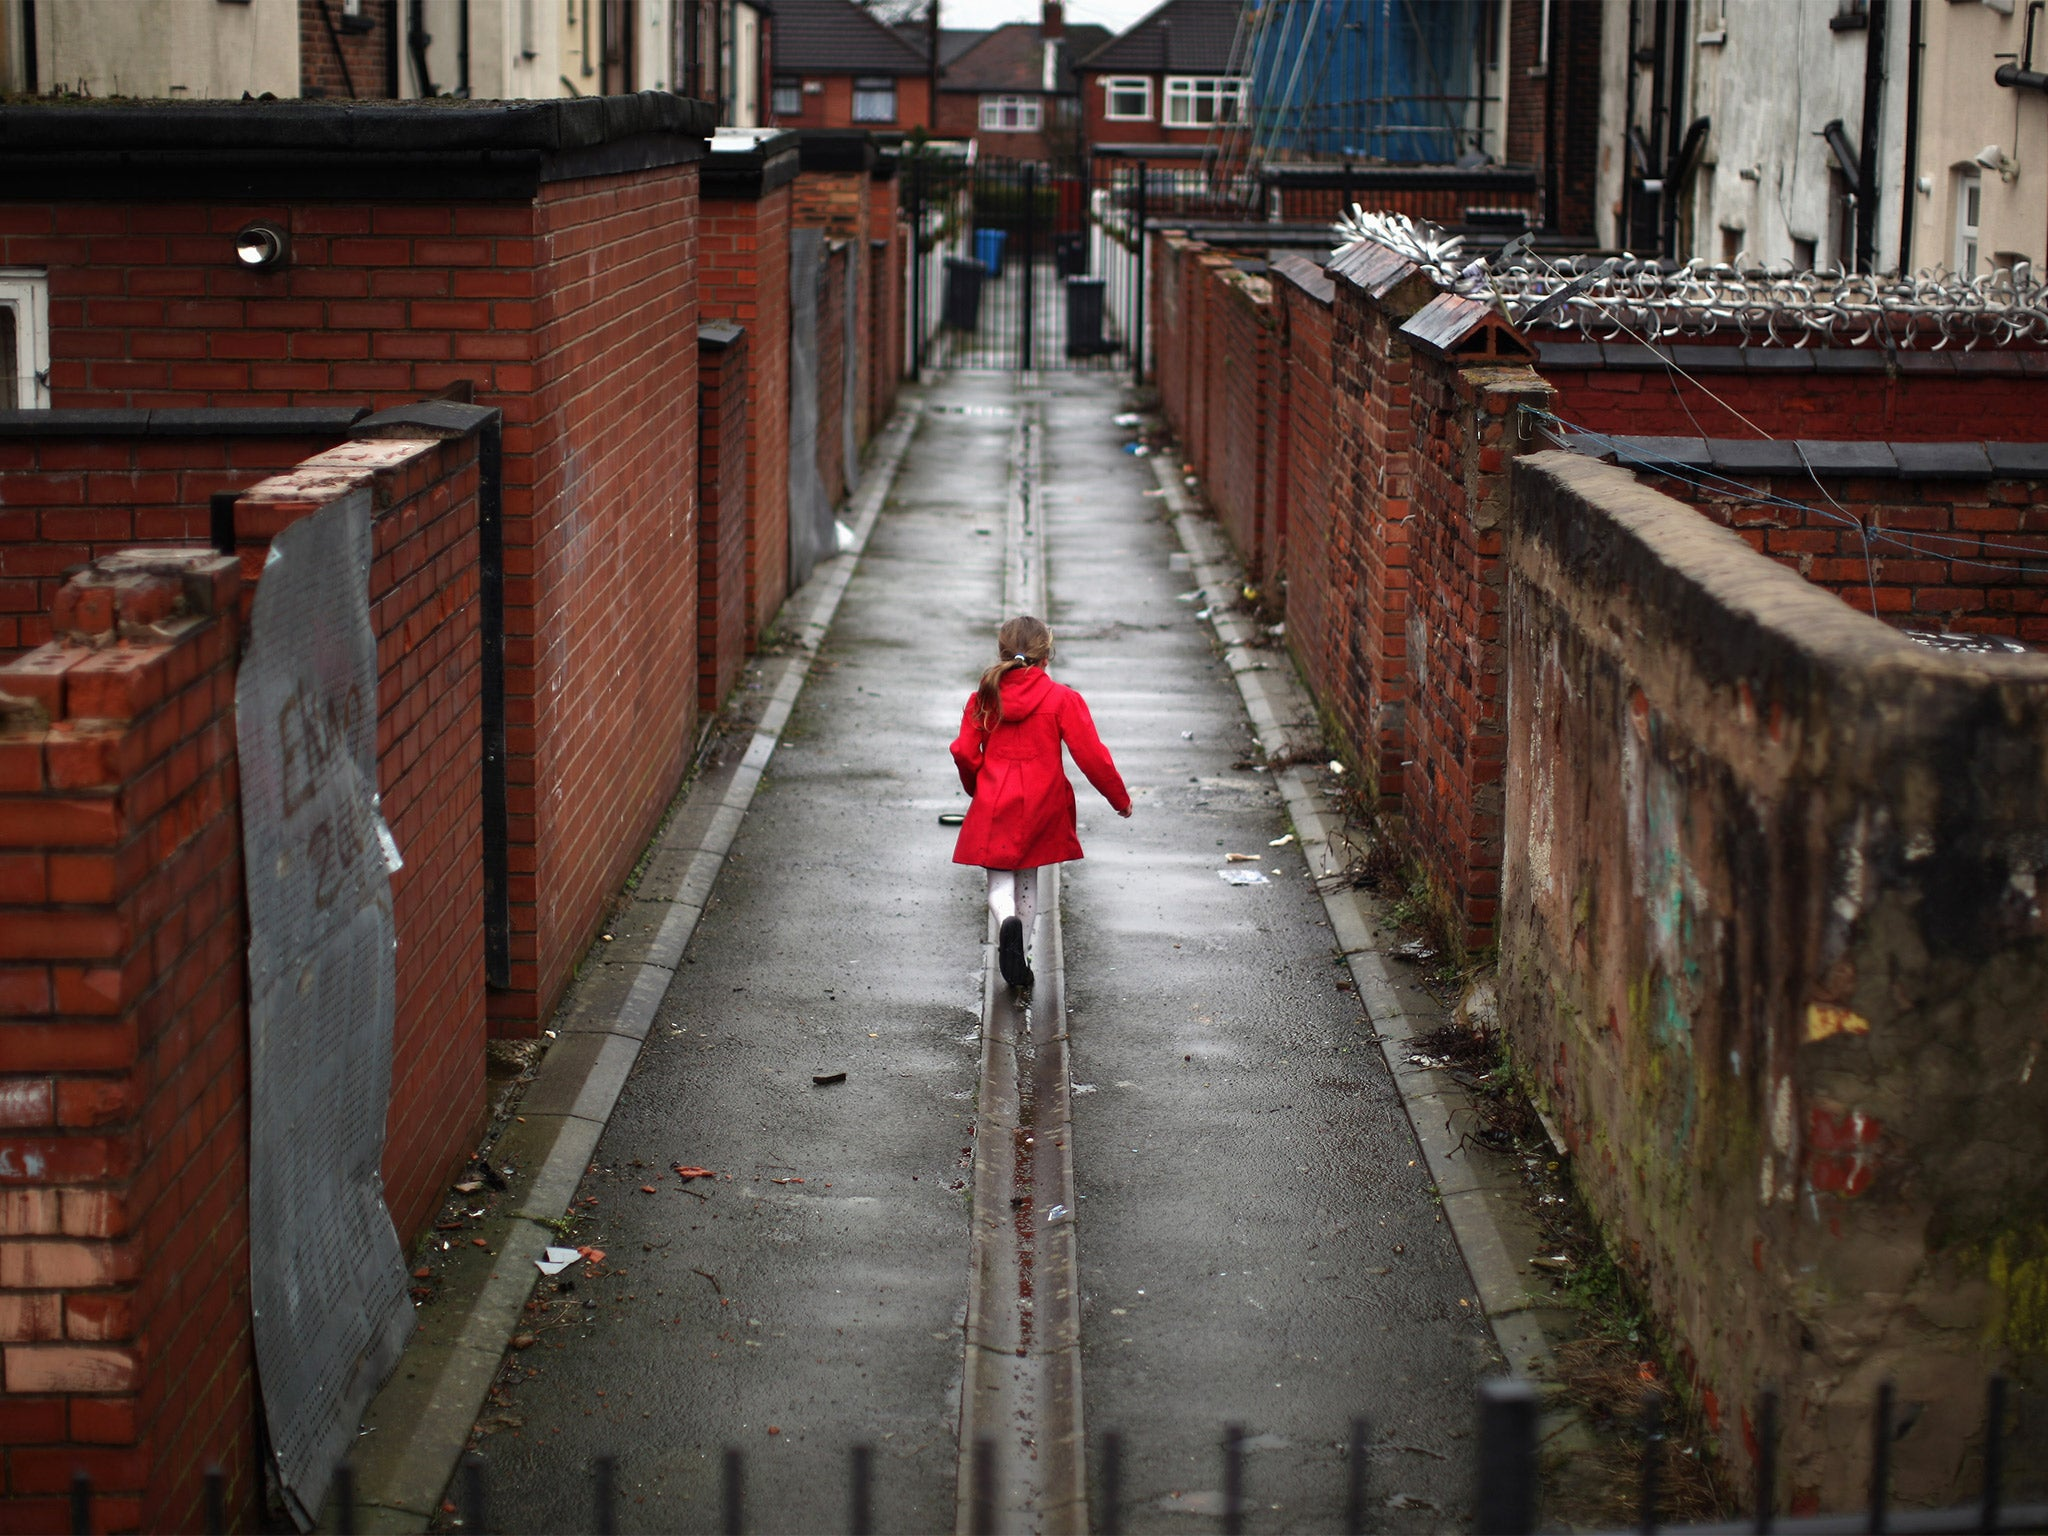 child poverty in the uk This article outlines some key definitions with regard to child poverty, reviews the links between child poverty and a range of health, developmental, behavioural and social outcomes for children, describes gaps in the evidence base and provides an overview of current policies relevant to child poverty in the uk.